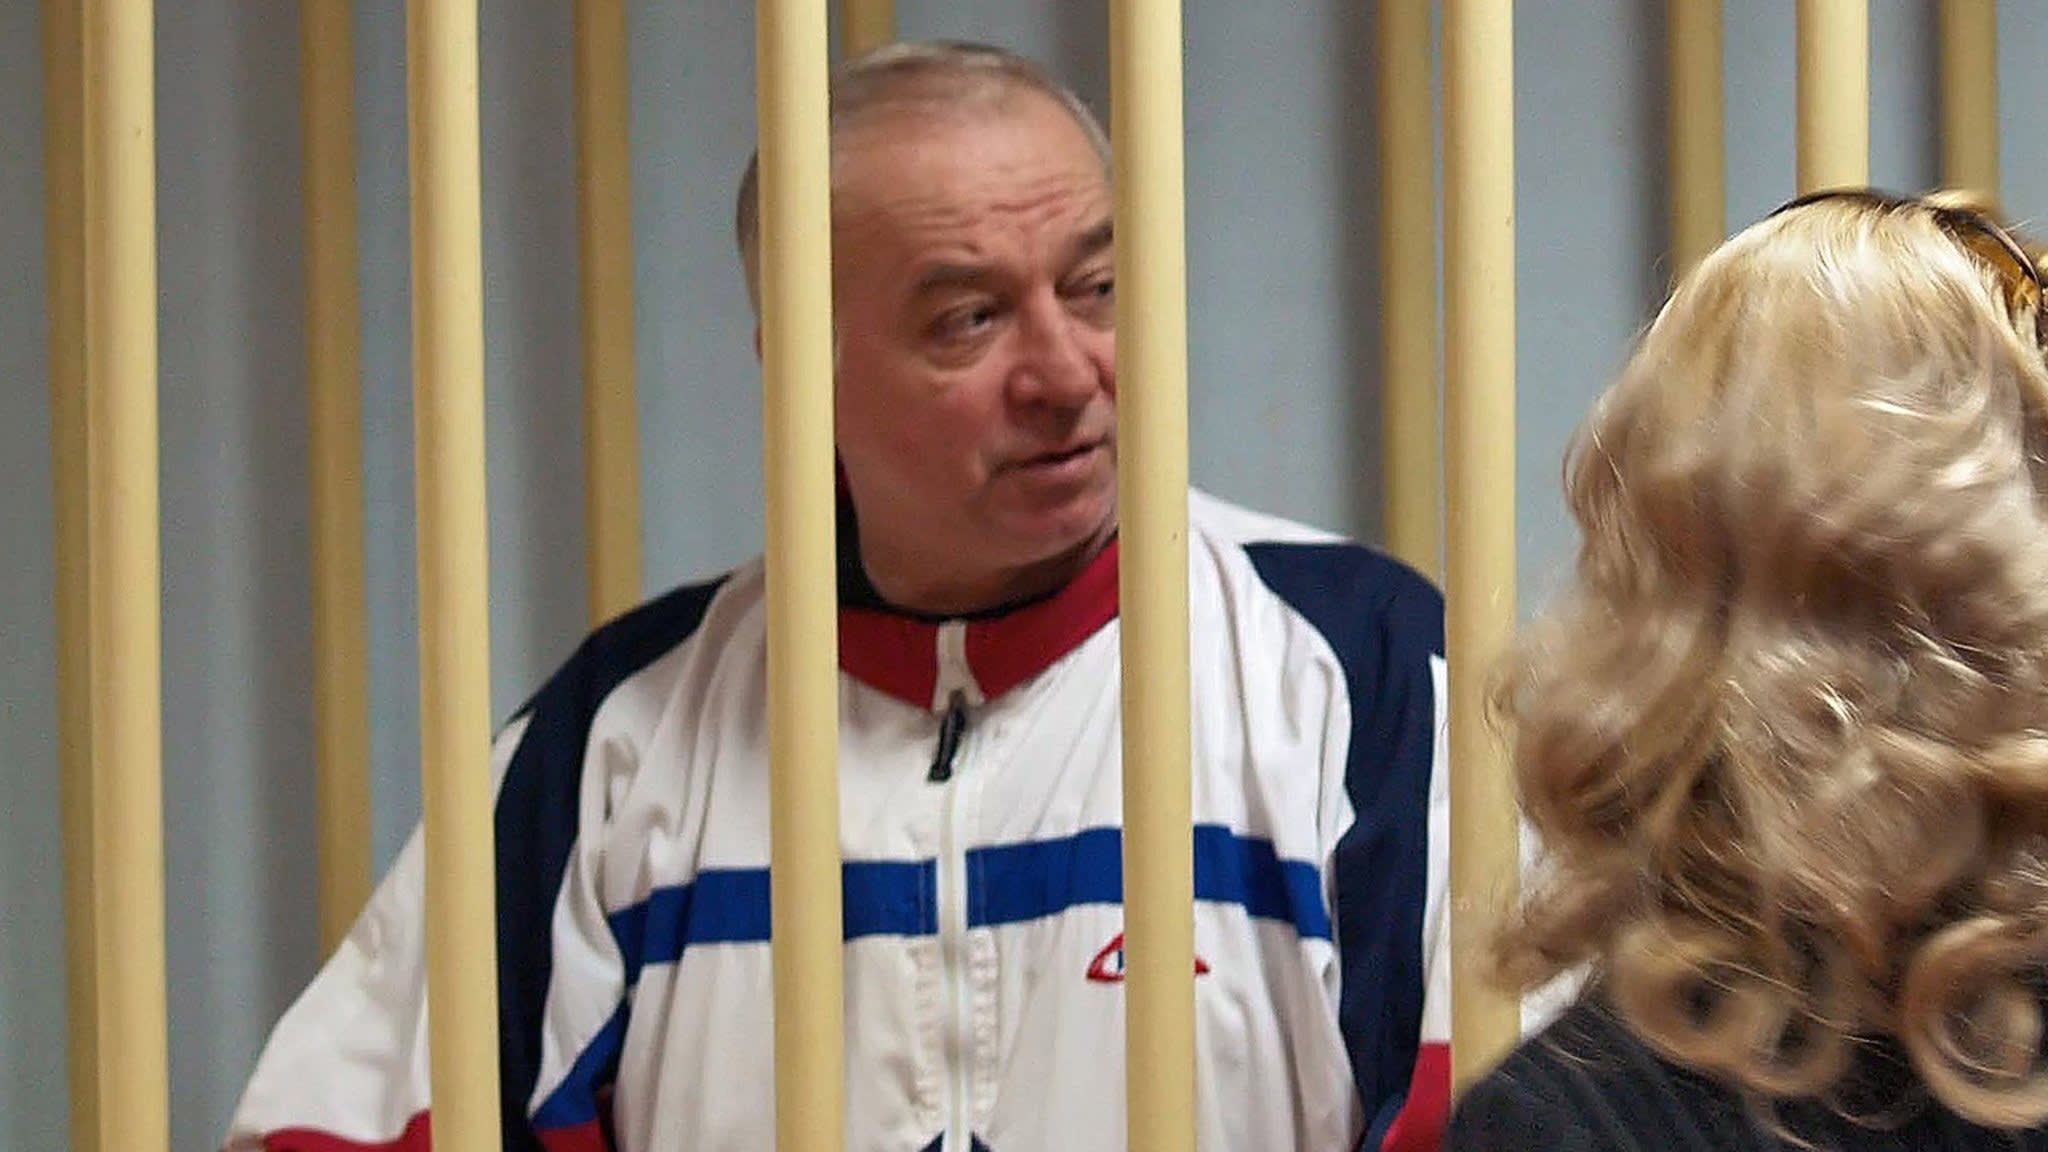 Nerve agent was used to poison former Russian spy